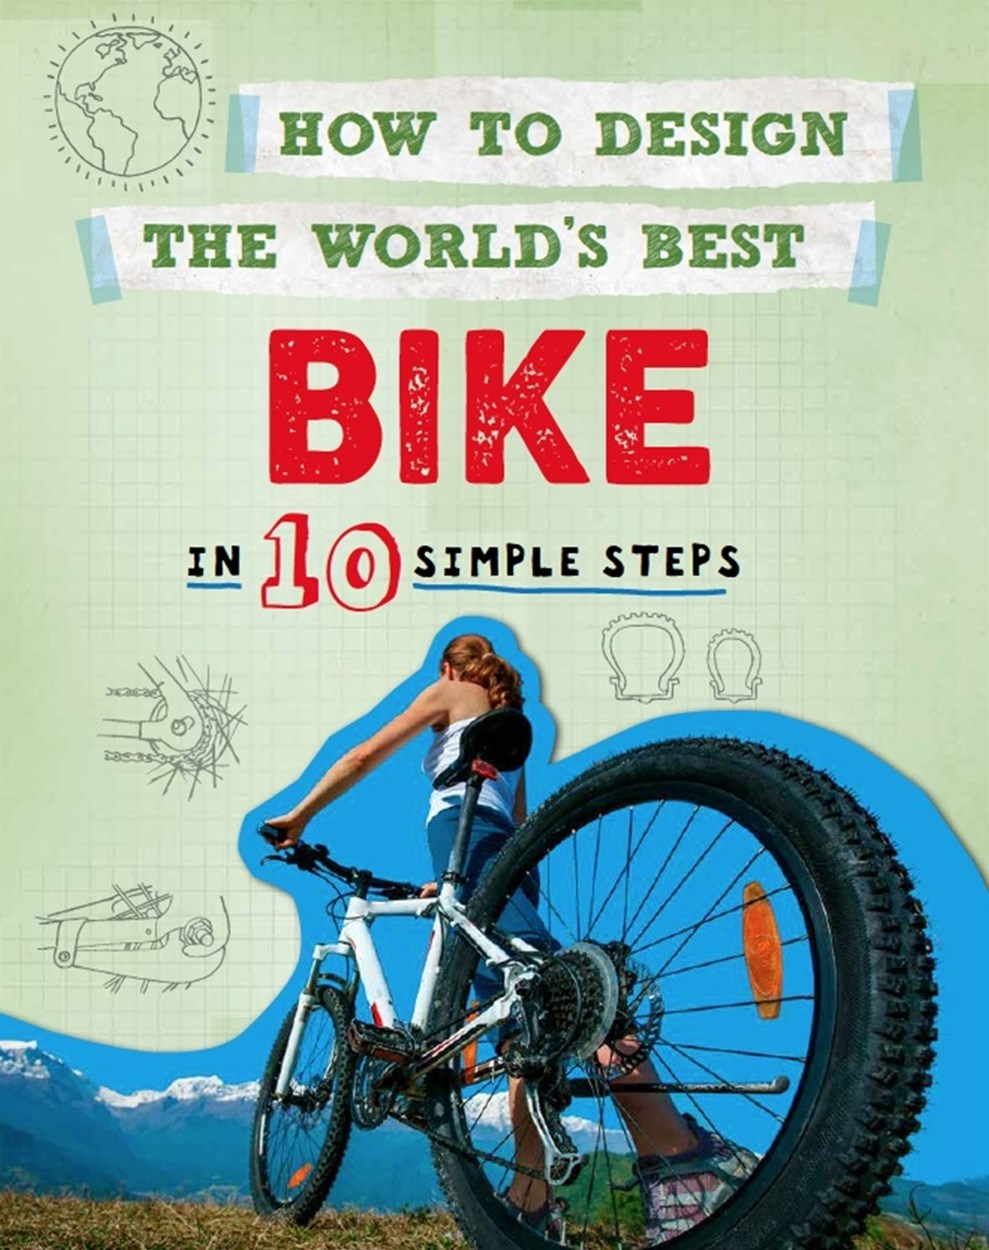 How to Design the World's Best Bike